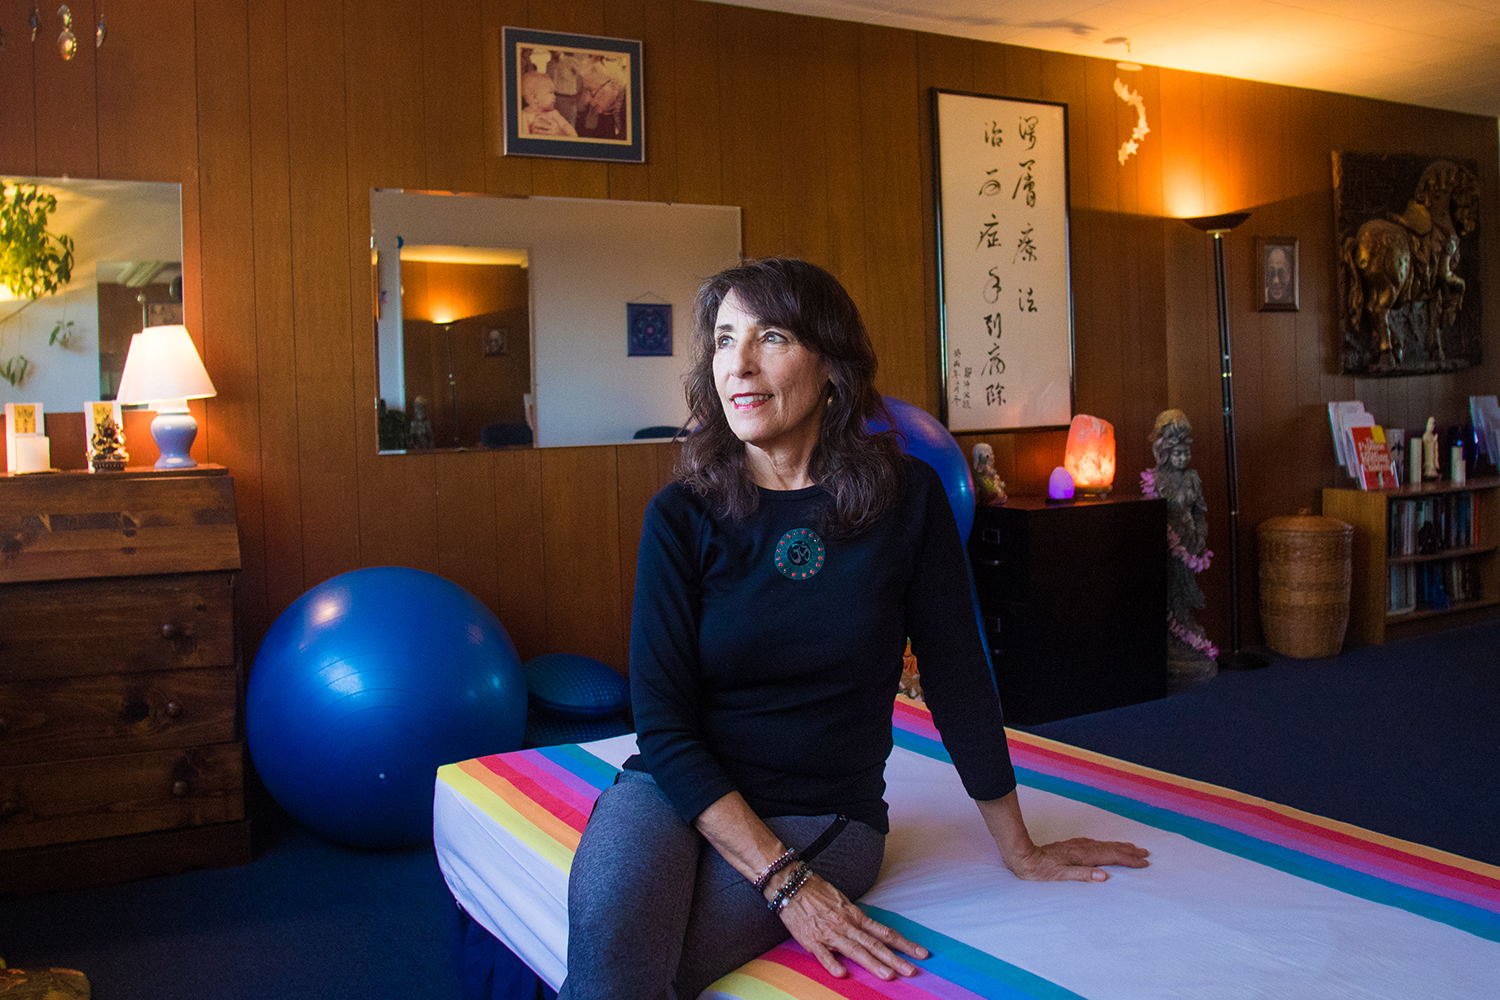 Karen Price sits in her studio on Cambridge Avenue in Palo Alto, where she operates her private practice as a certified rolfer. Price says that being self-employed and able to afford her office studio for 39 years defines what it means to be middle class in the city.